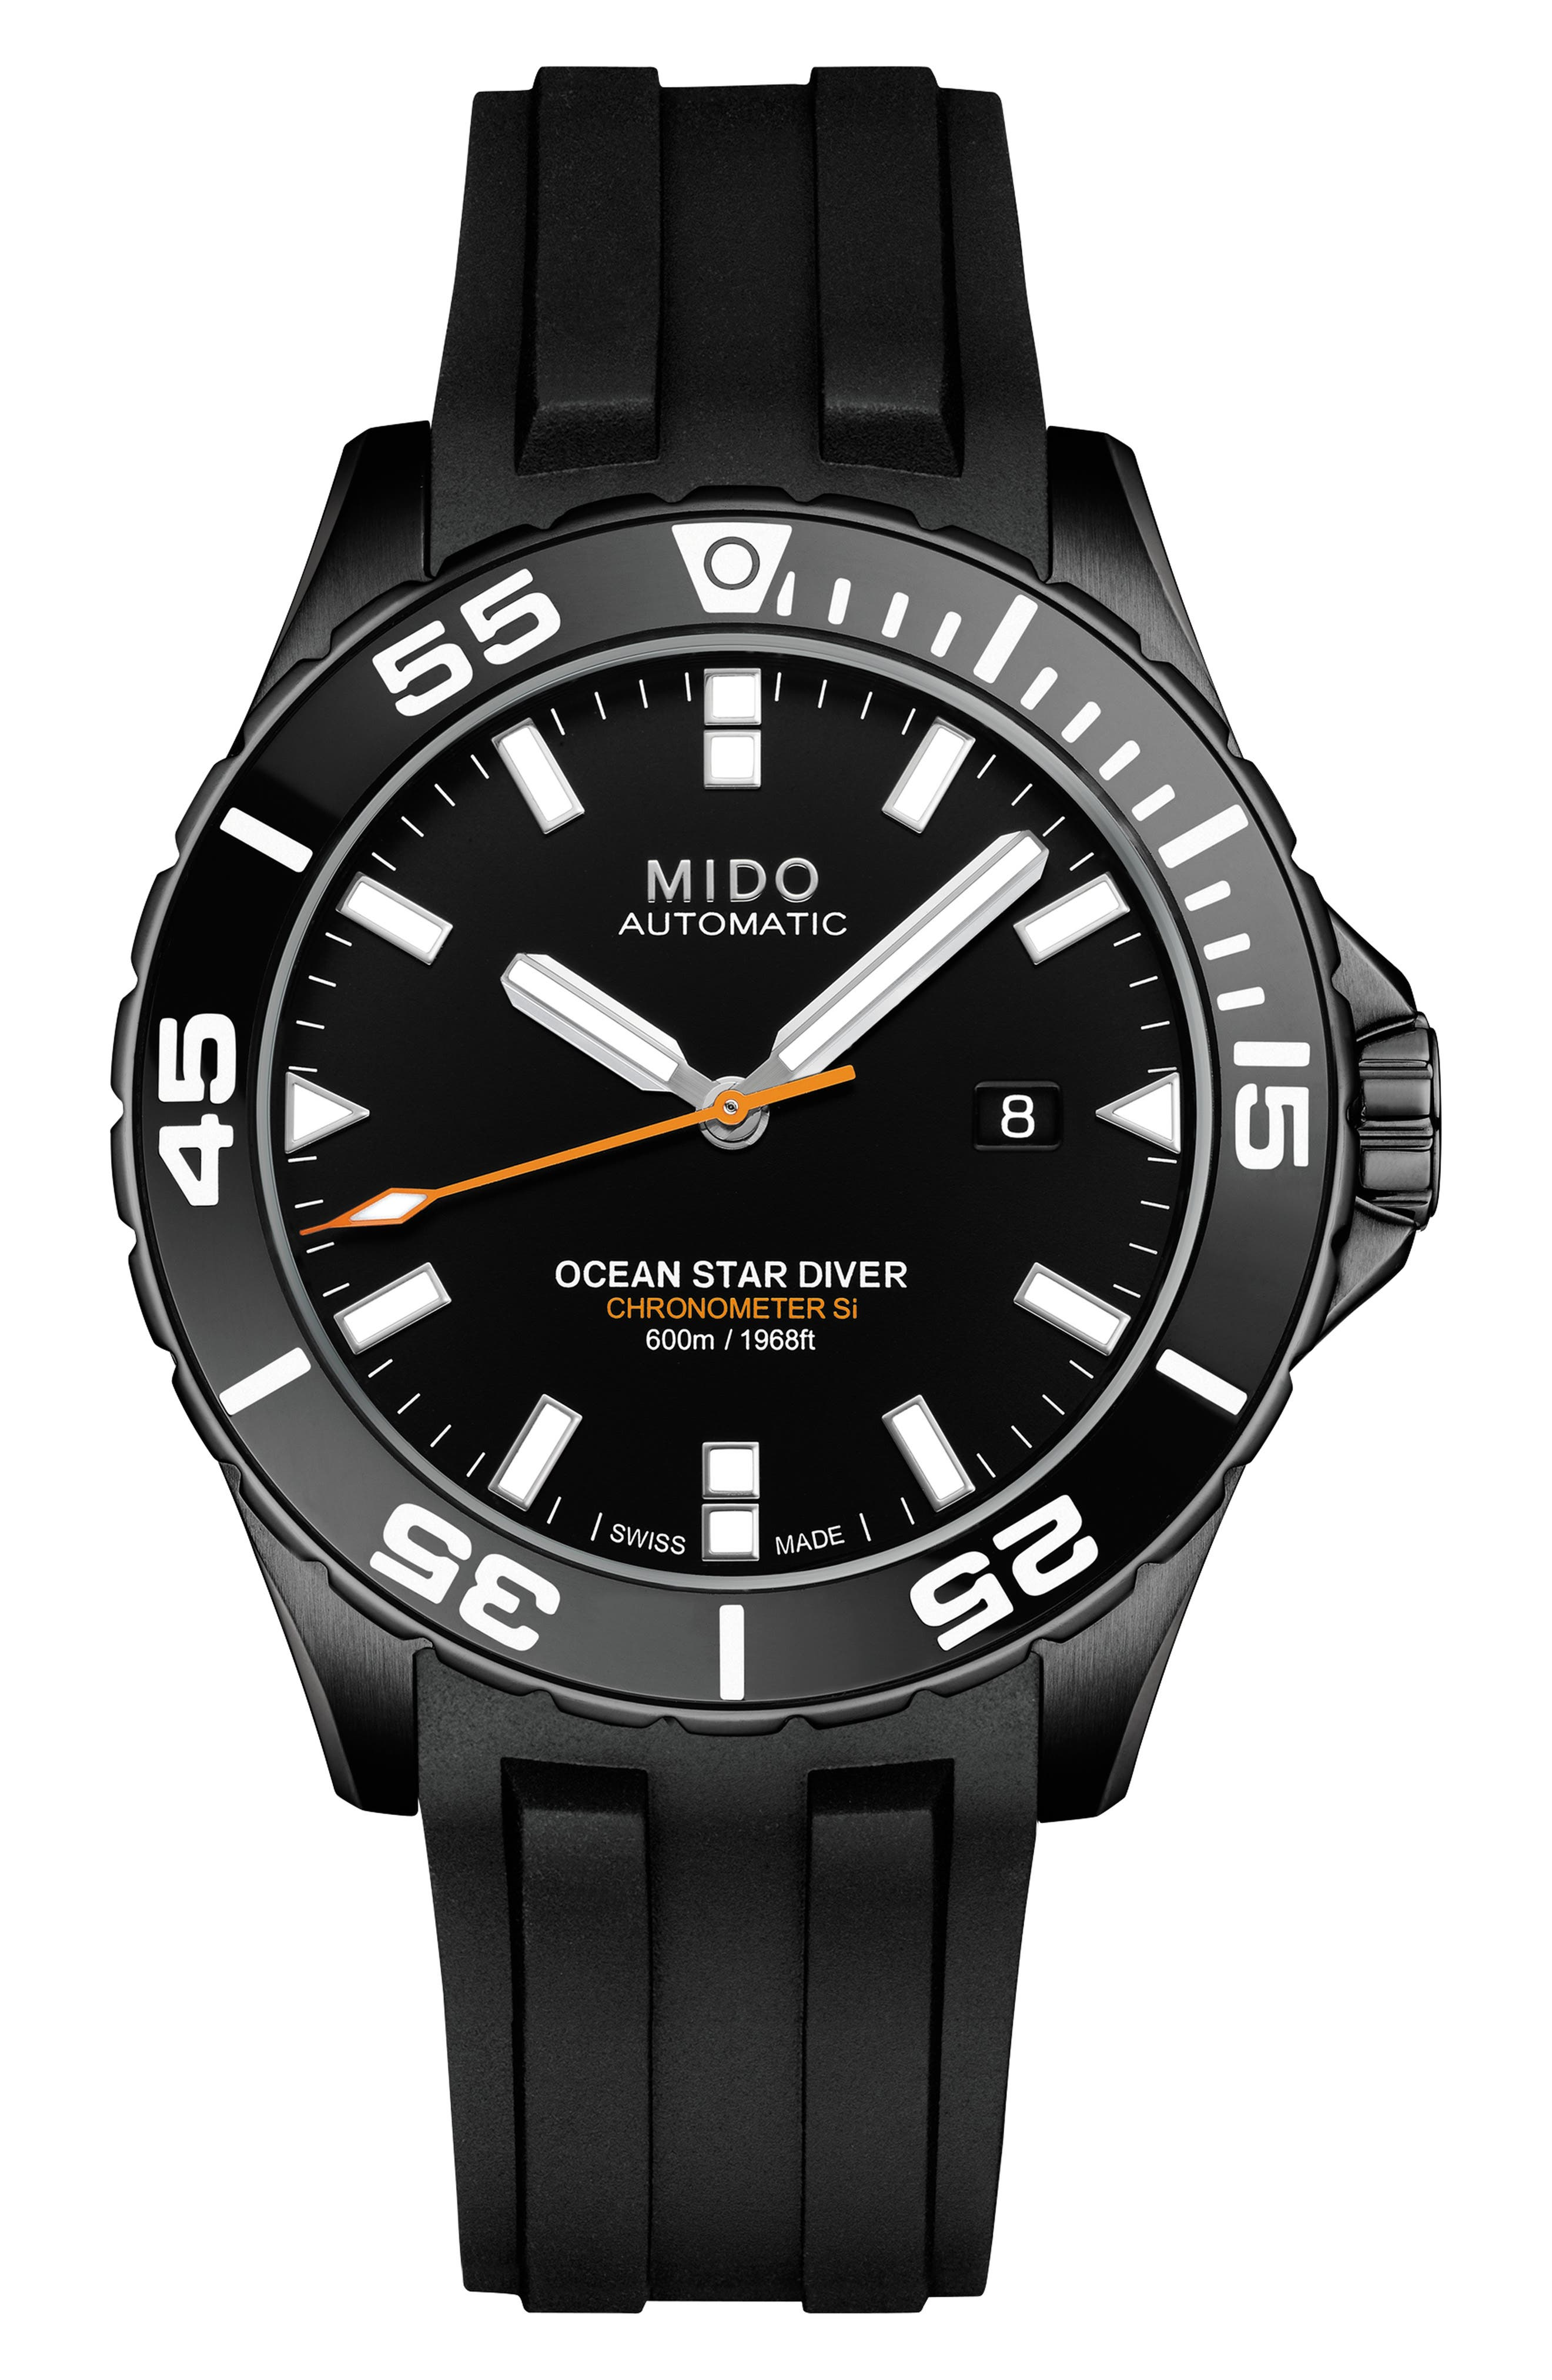 Ocean Star Diver 600 Automatic Rubber Strap Watch